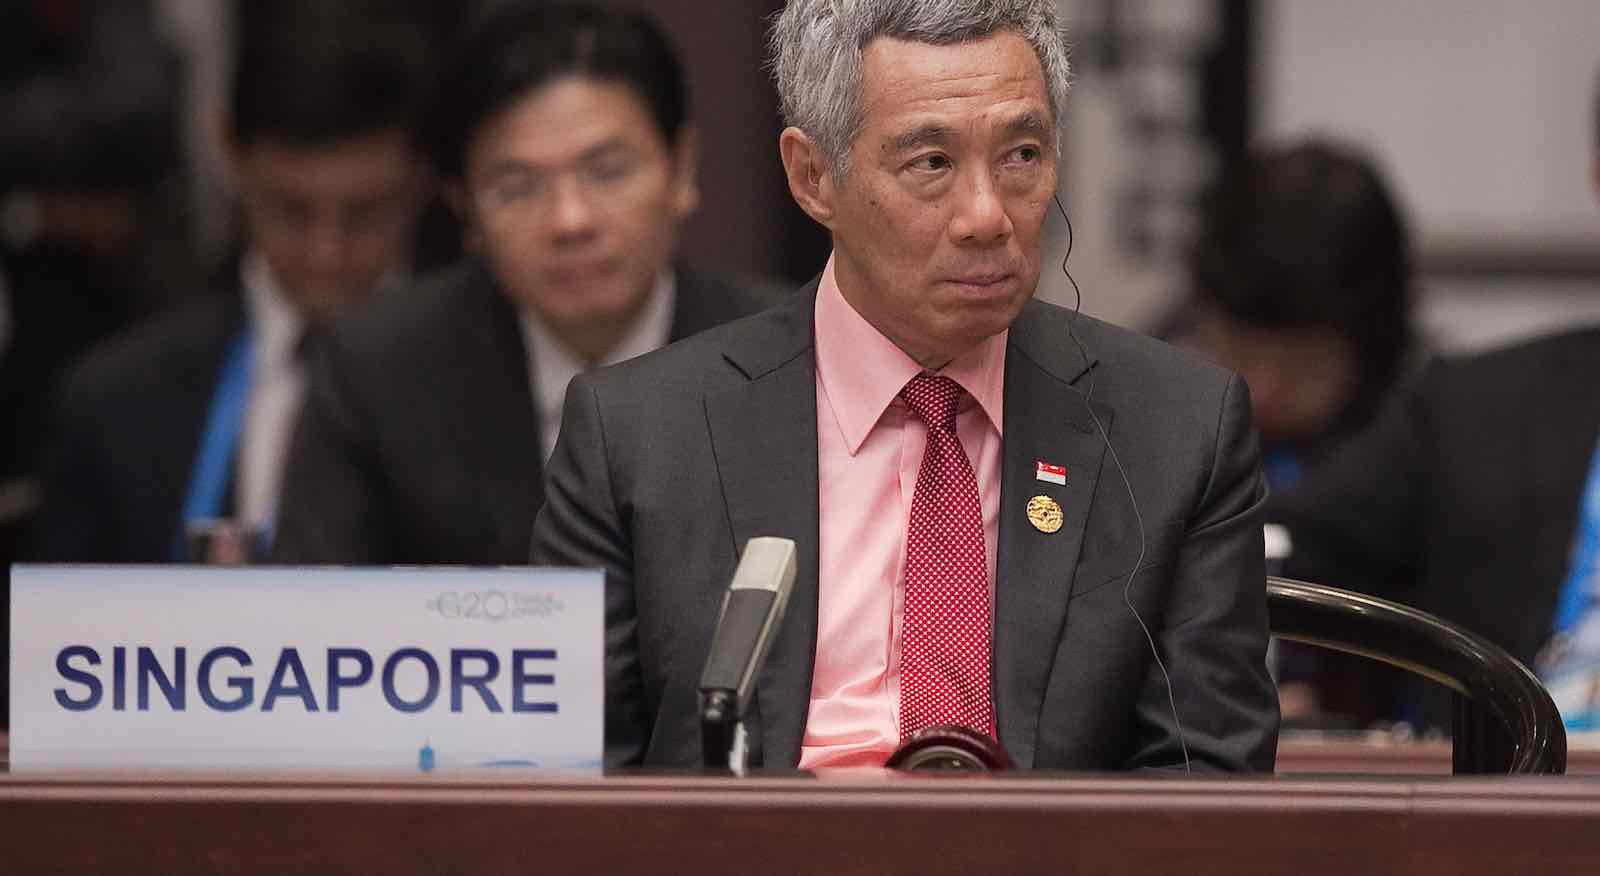 Singapore's Prime Minister Lee Hsien Loong (Photo: Nicolas Asfouri/Getty)